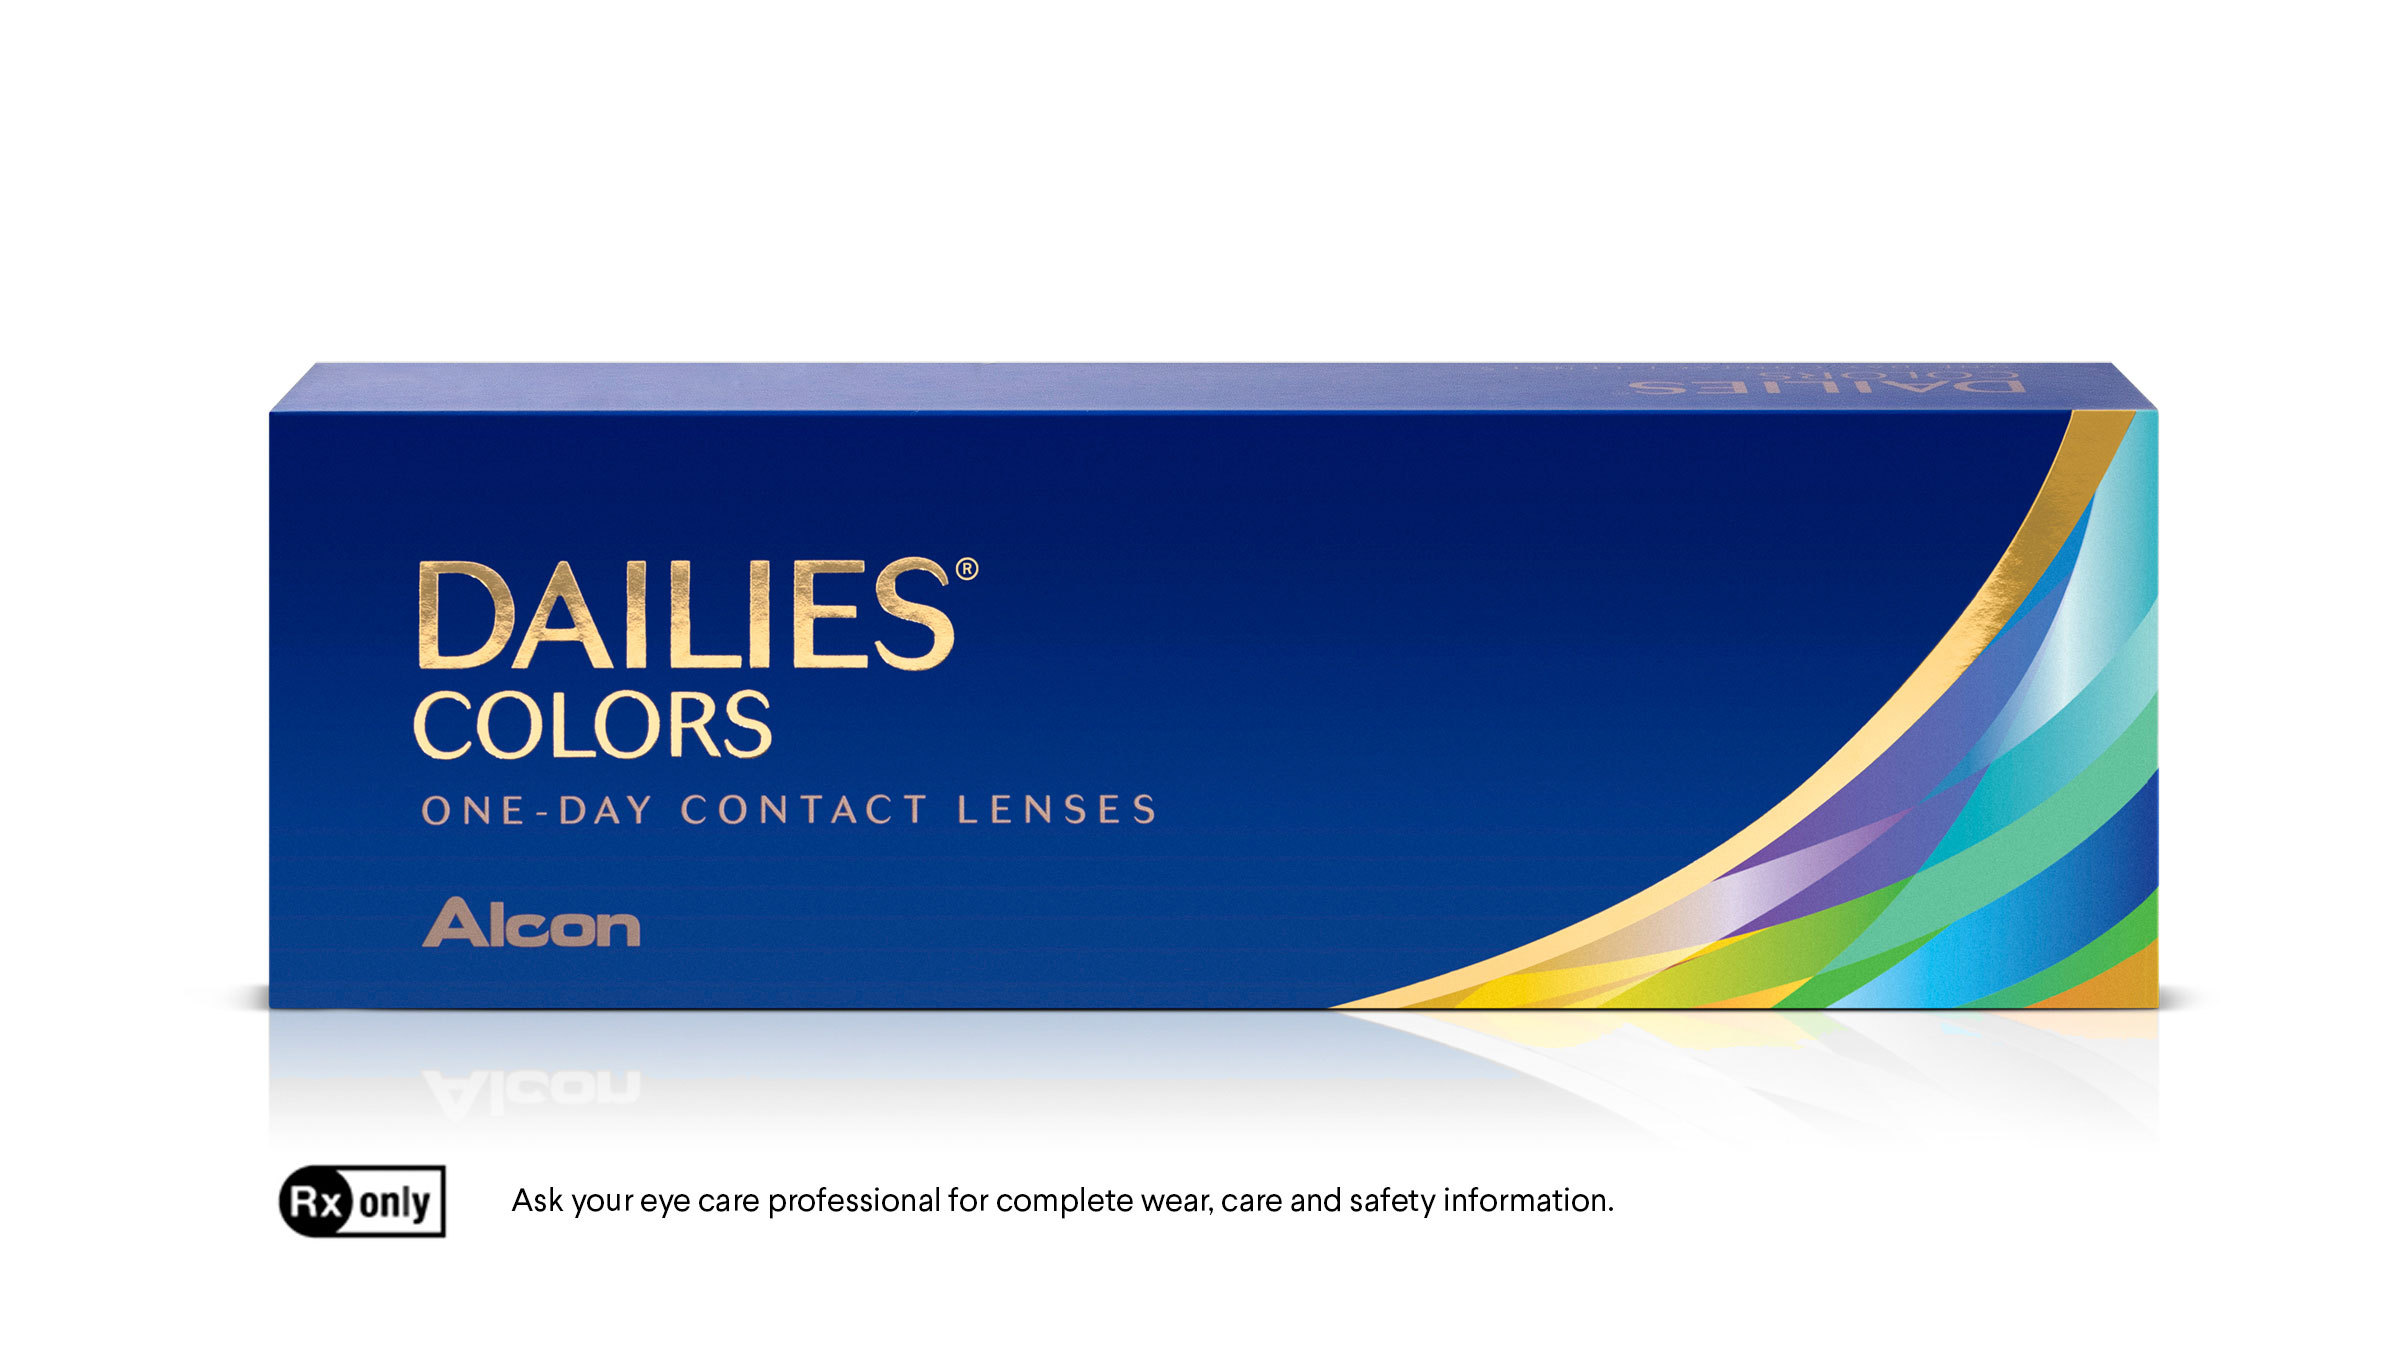 New Alcon Dailies Colors Contact Lenses Give Beauty Lovers Permission To Play With Their Eye Color Every Day Business Wire